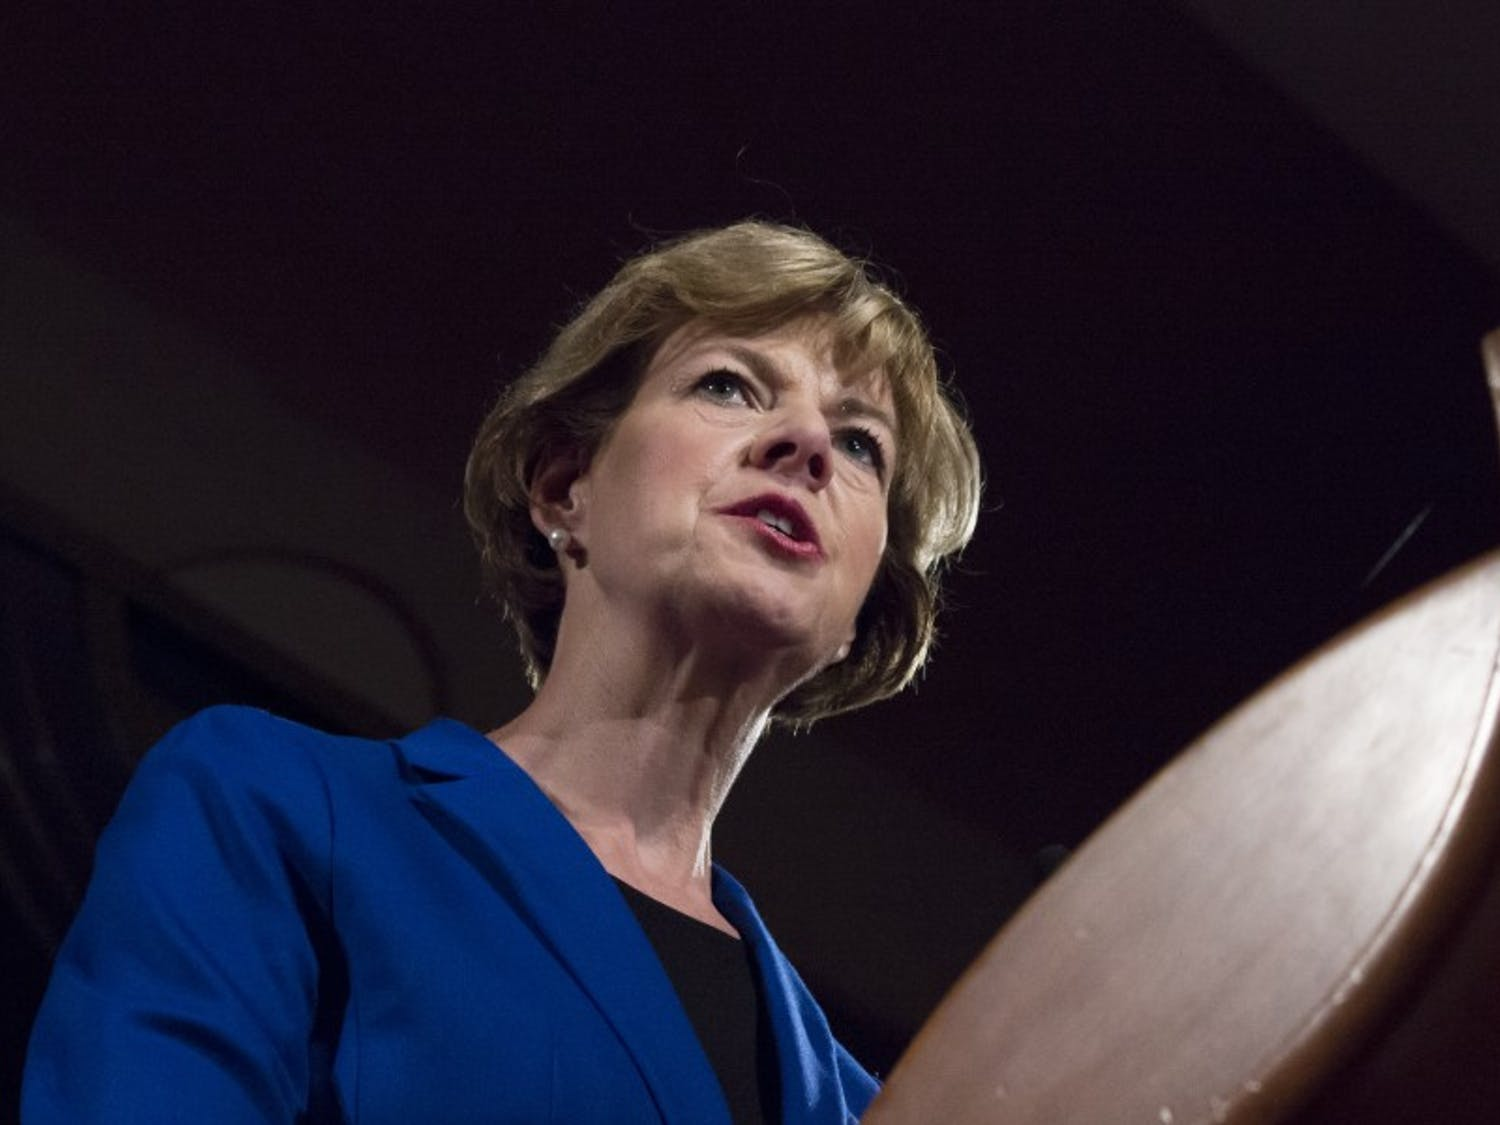 Empowering other women starts with believing in yourself, that is what Tammy Baldwin would do